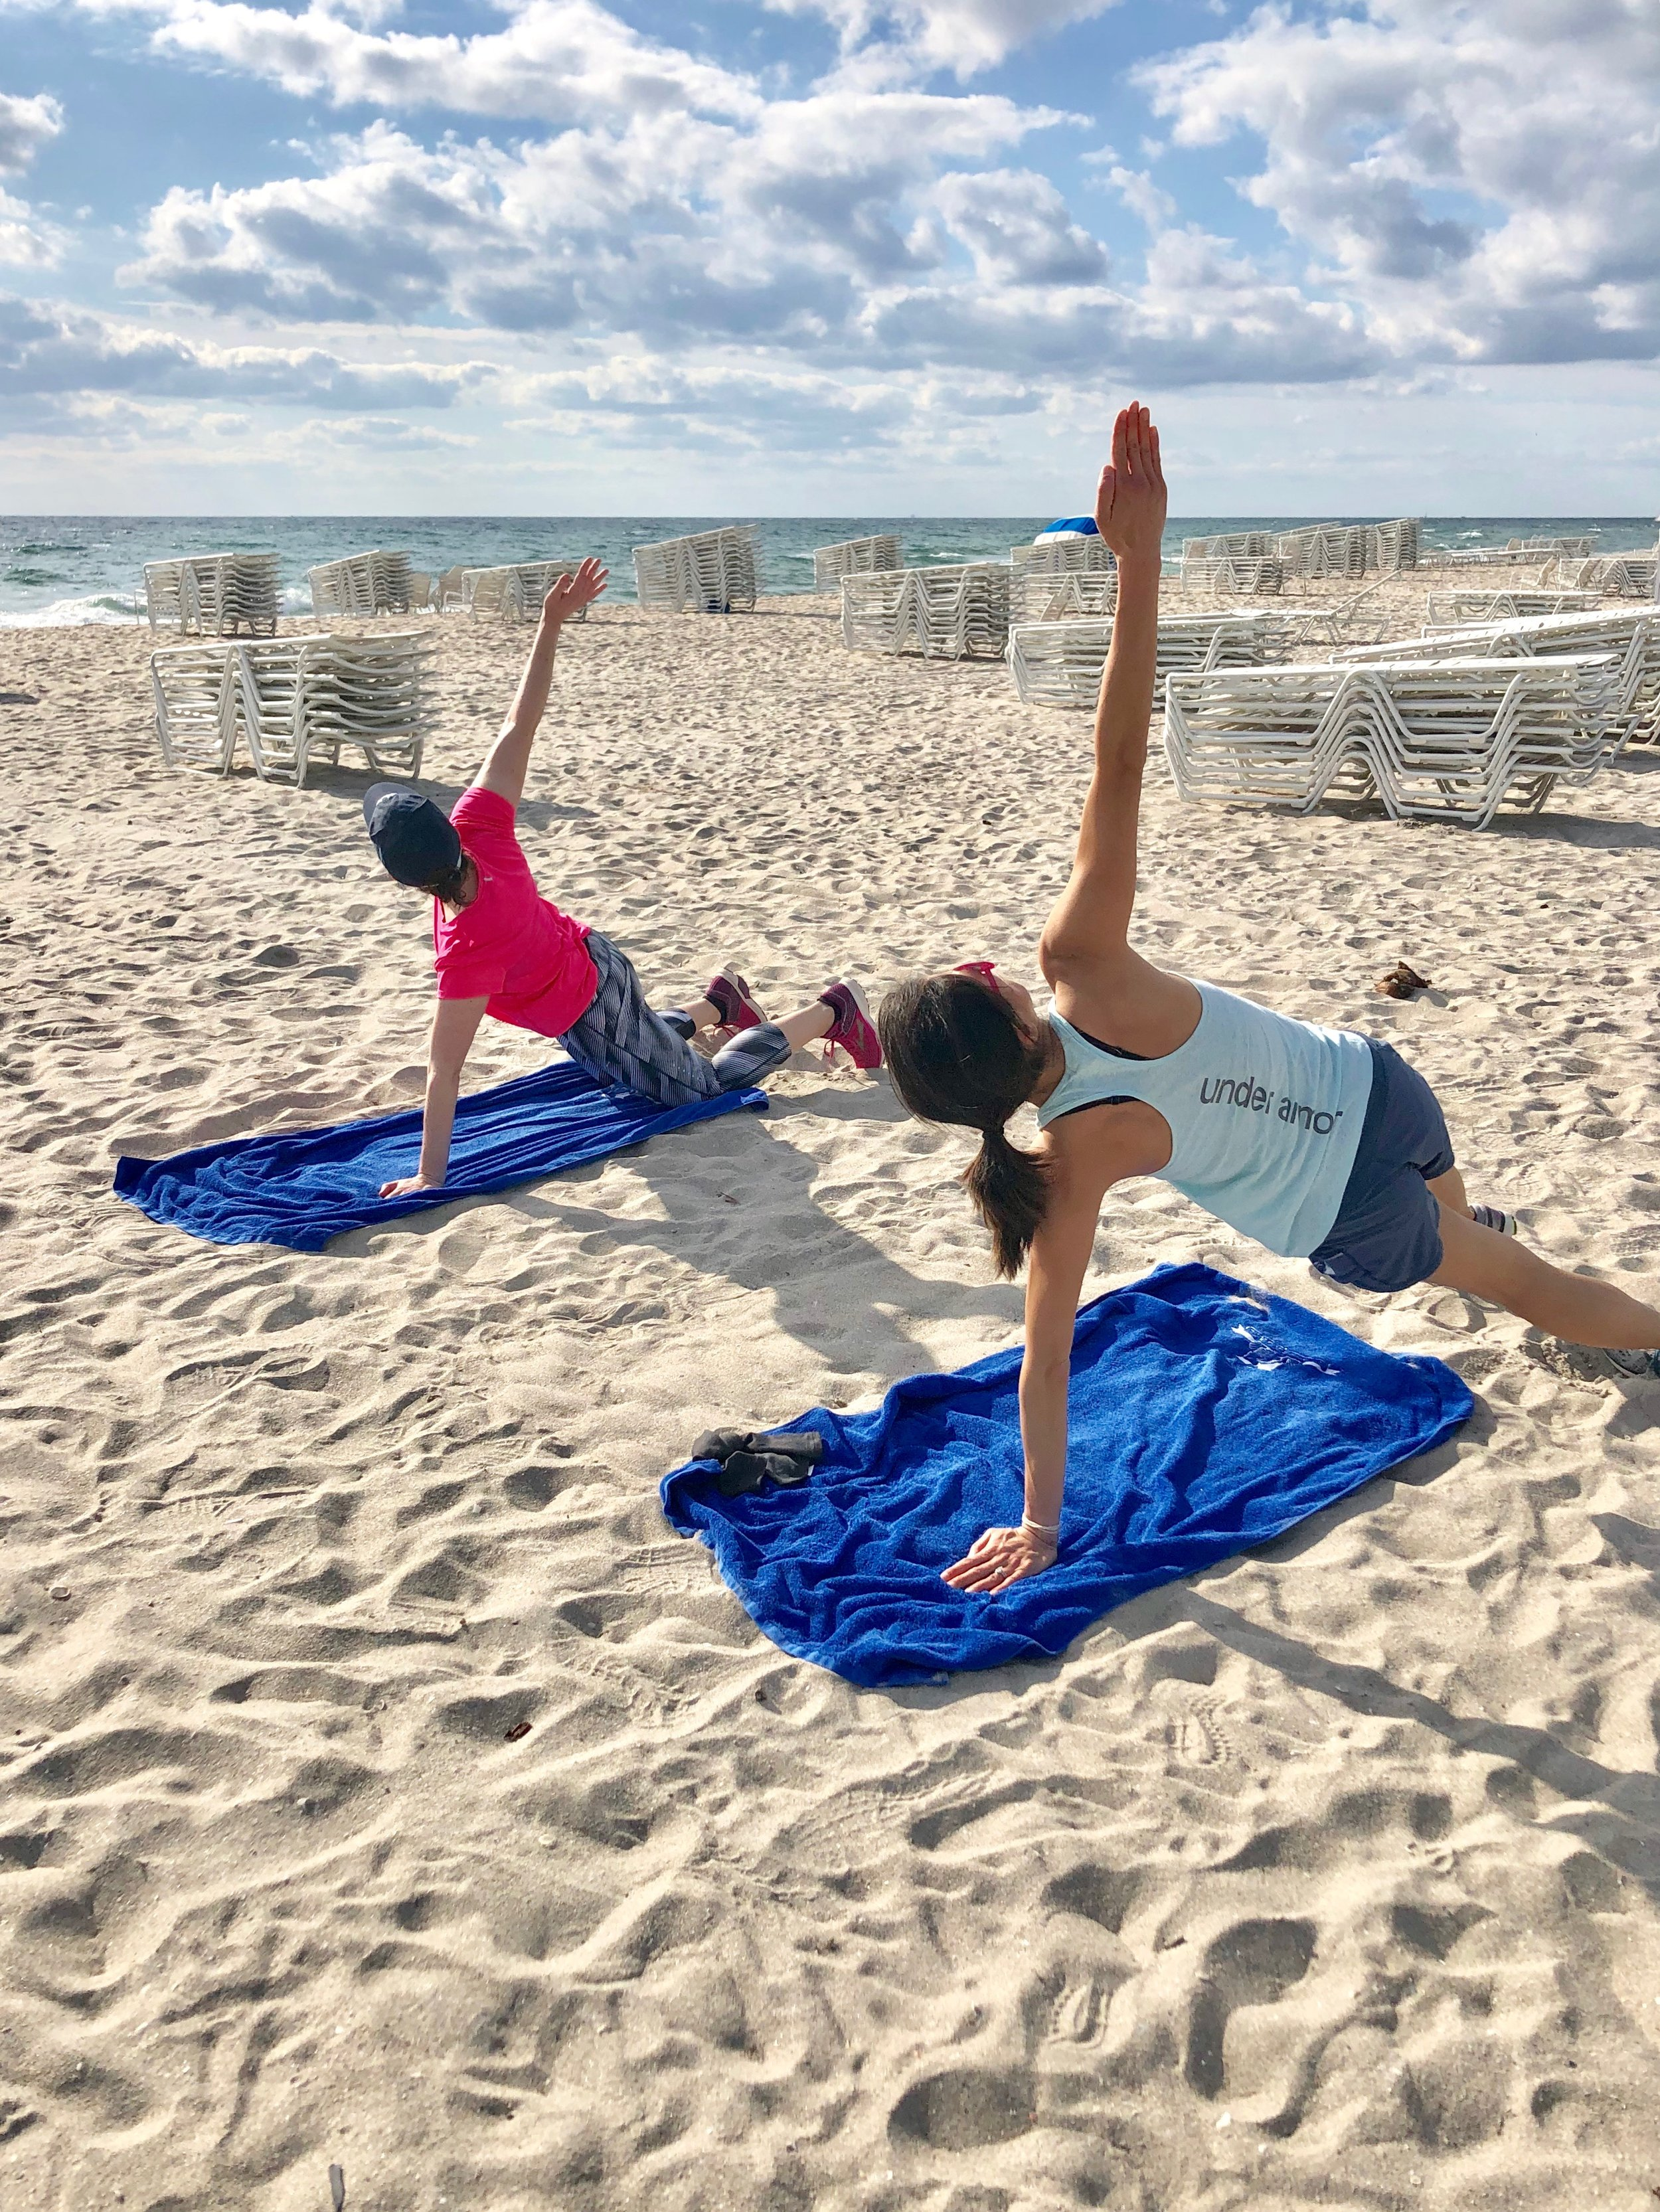 Clients enjoy core on the beach during fitness vacation.